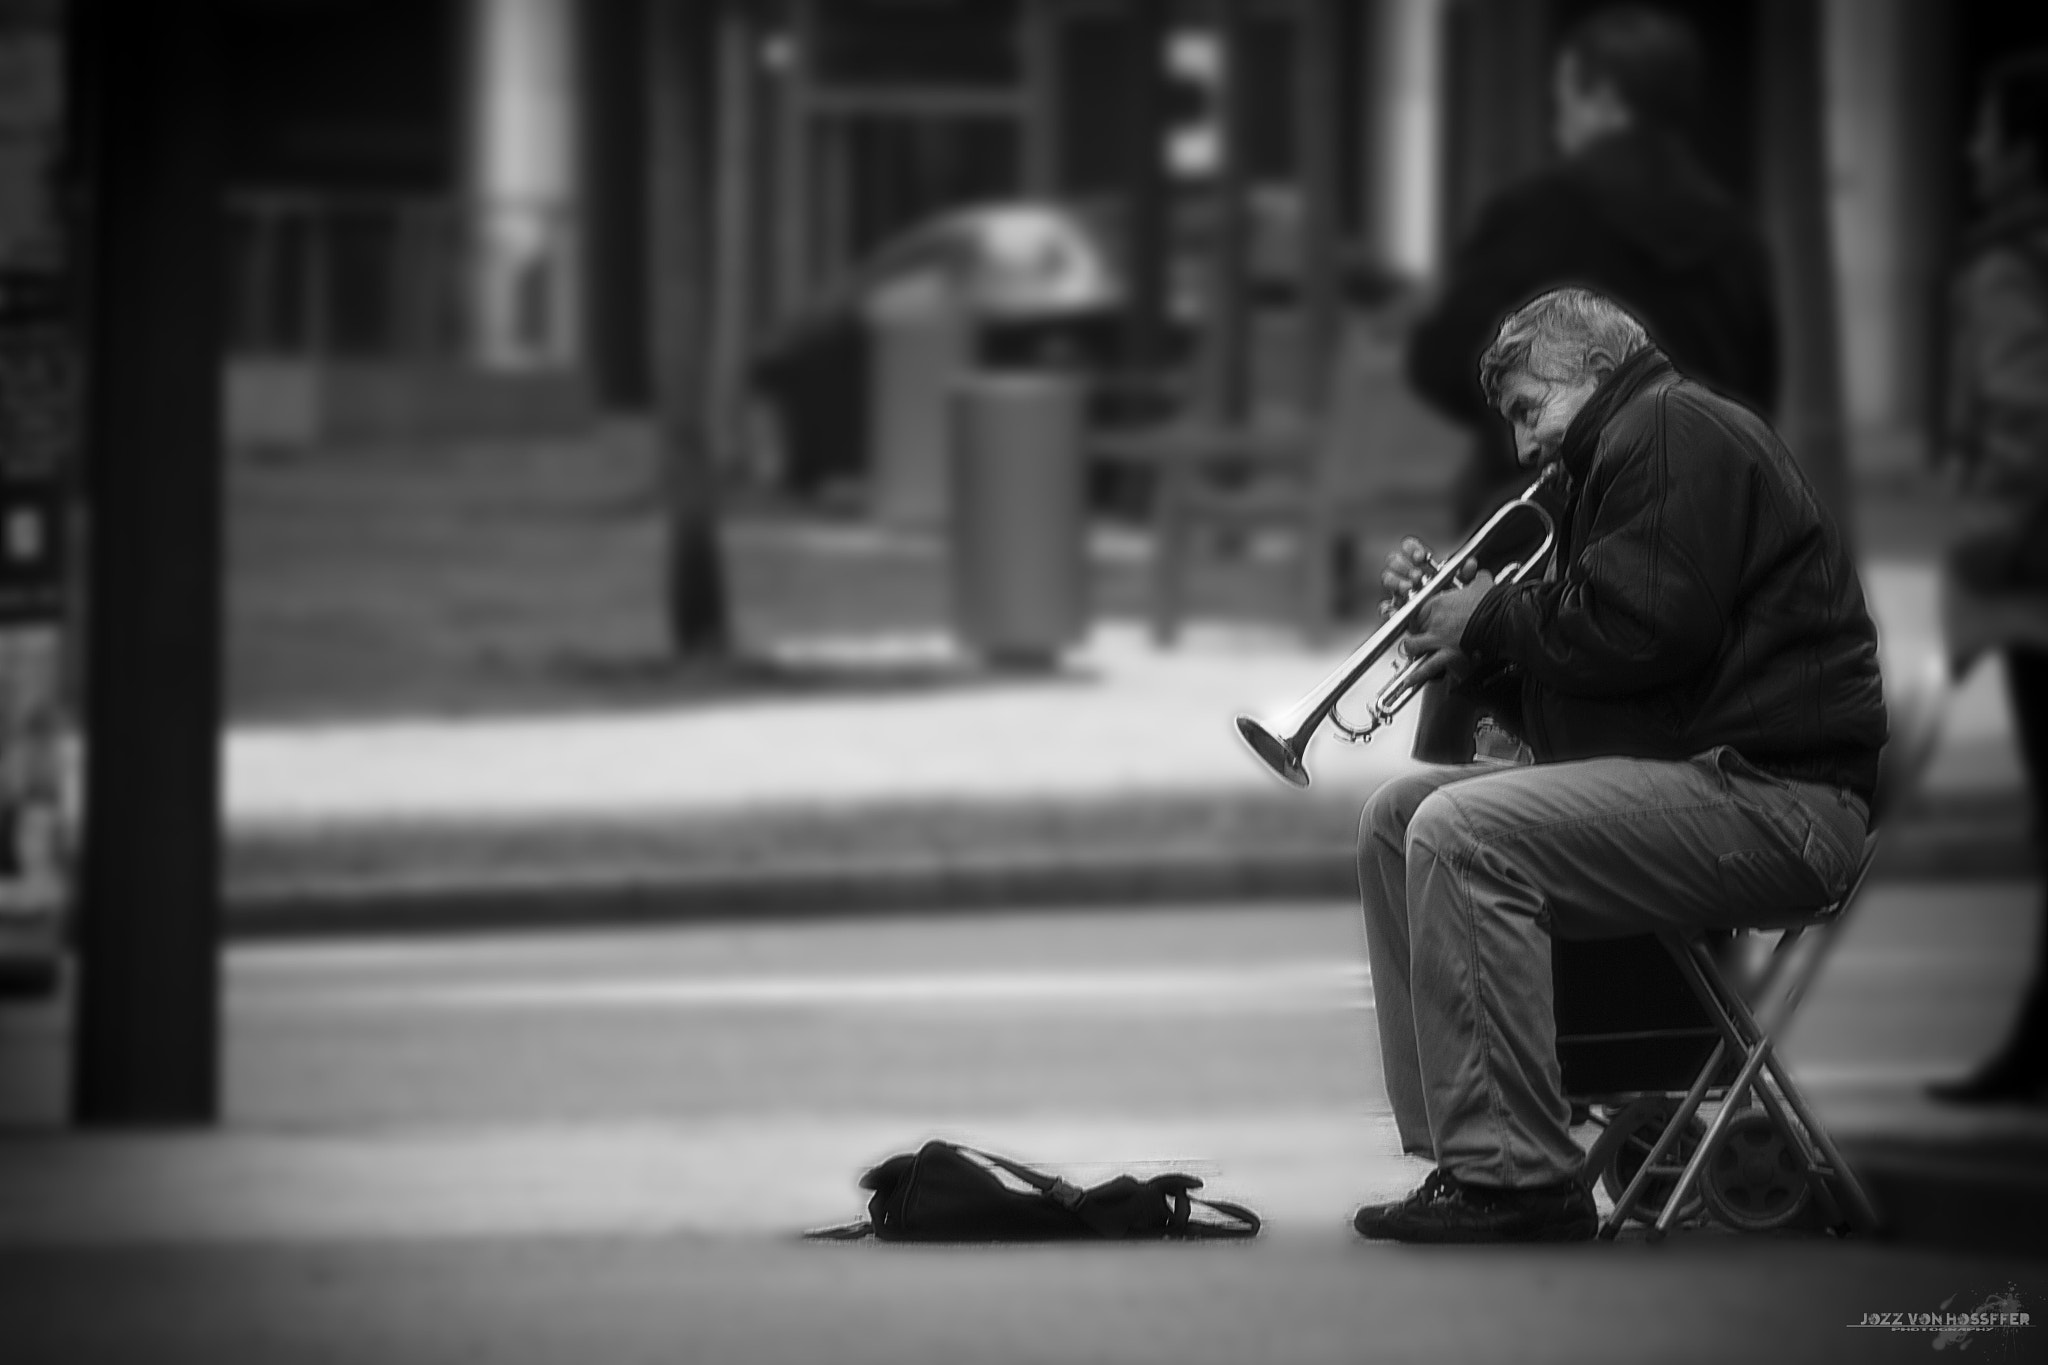 Photograph The trumpet player by Jozz Von Hossffer on 500px